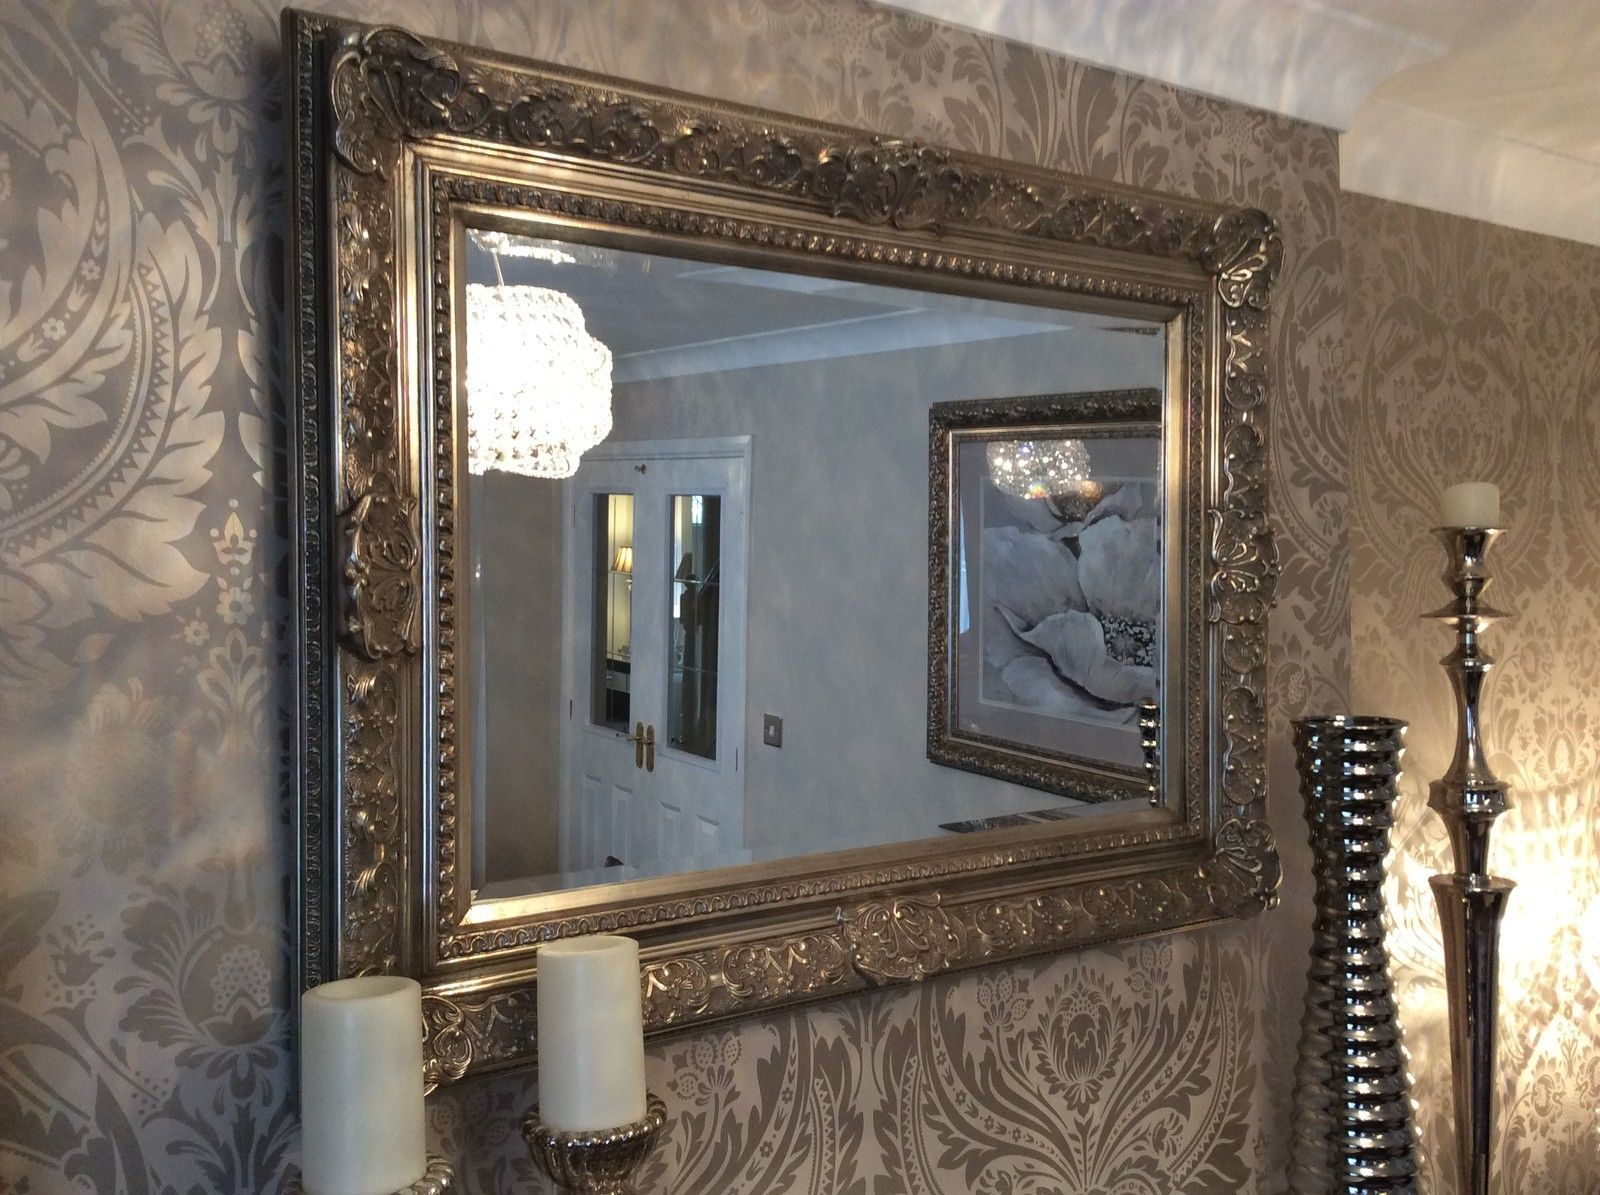 Decorative antique silver wall mirror full range of for Full wall mirrors